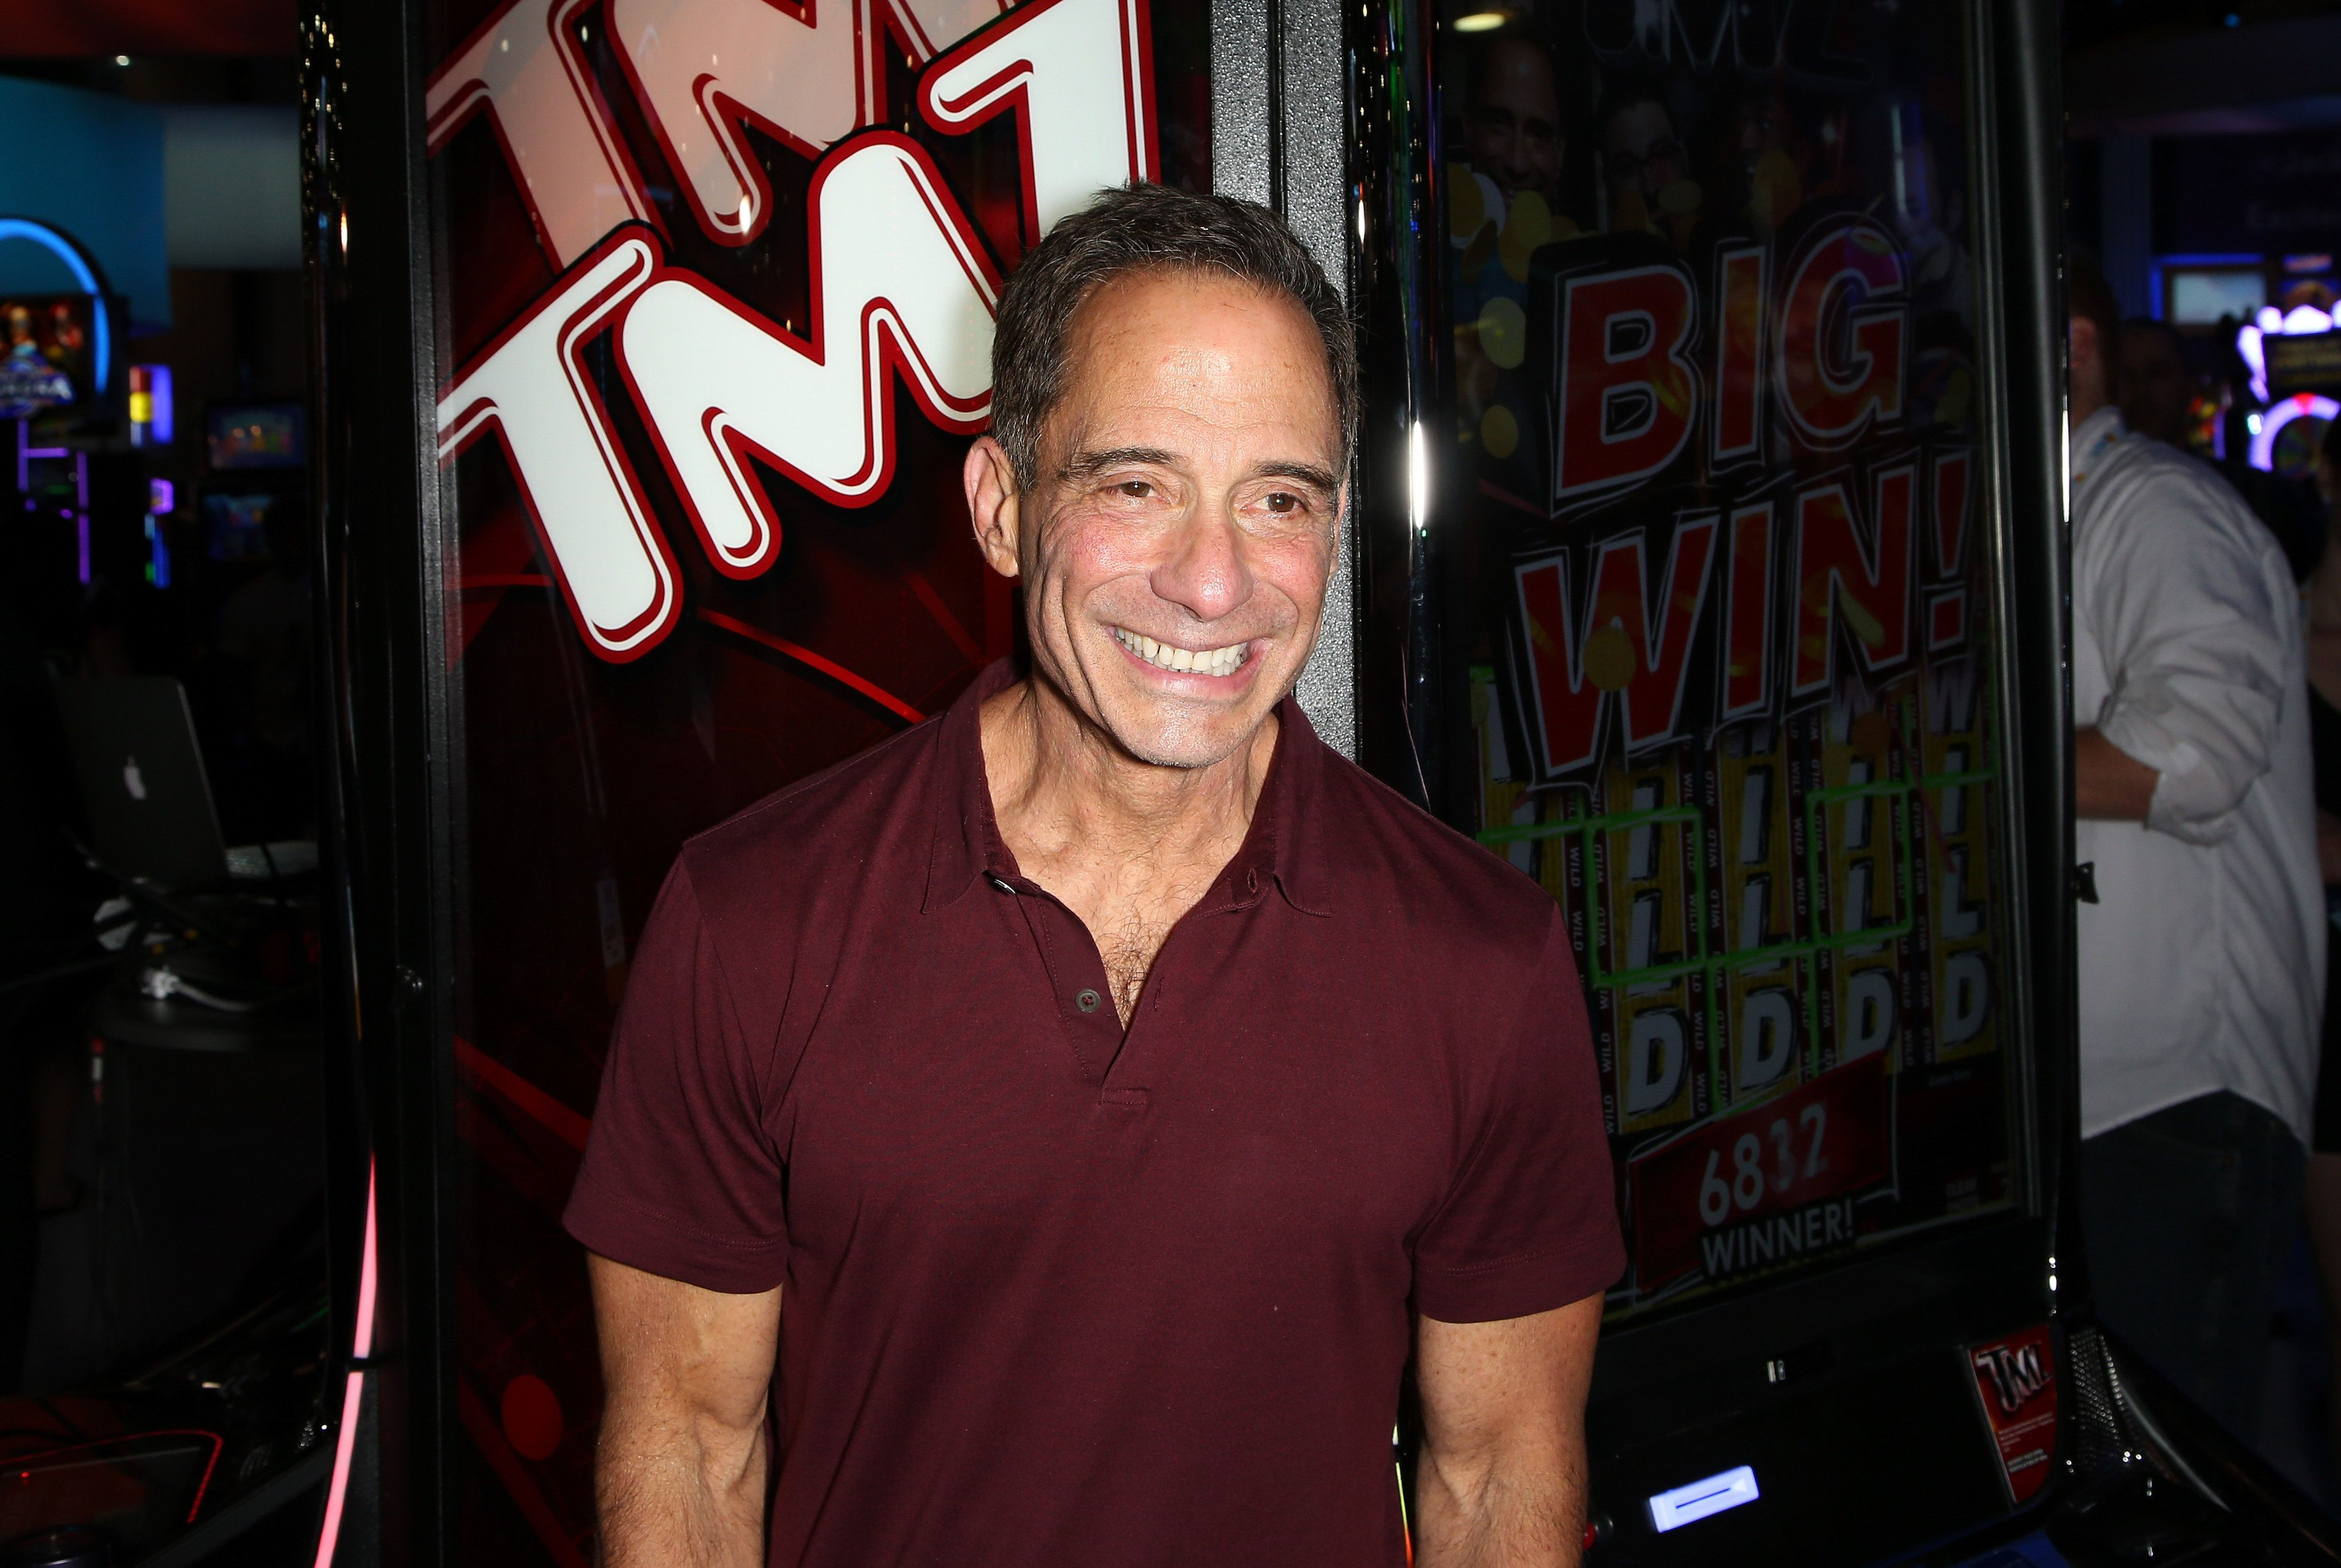 tmz staff members names. tmz head honcho harvey levin gets surprisingly candid about his sexuality | huffpost tmz staff members names